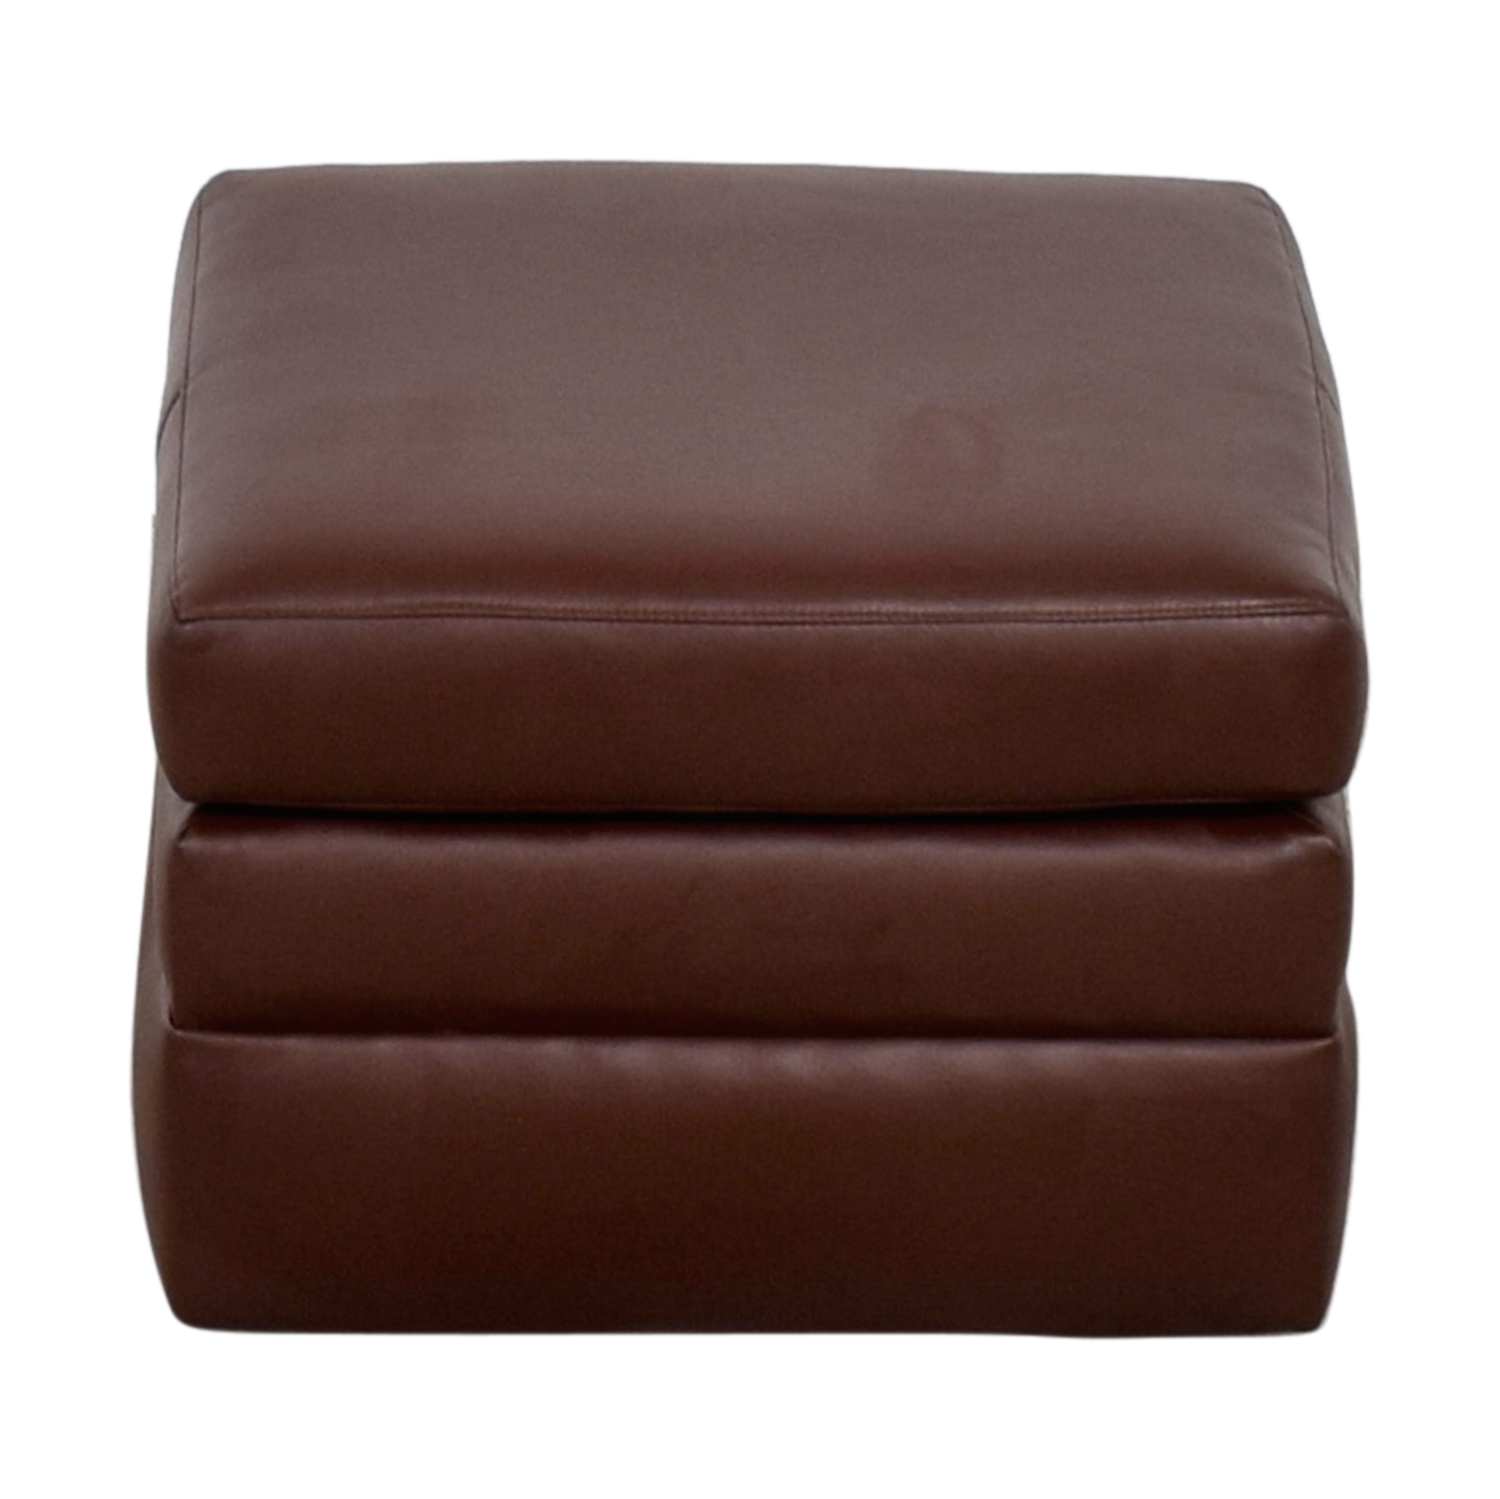 shop  Custom Made Faux Leather Ottoman online